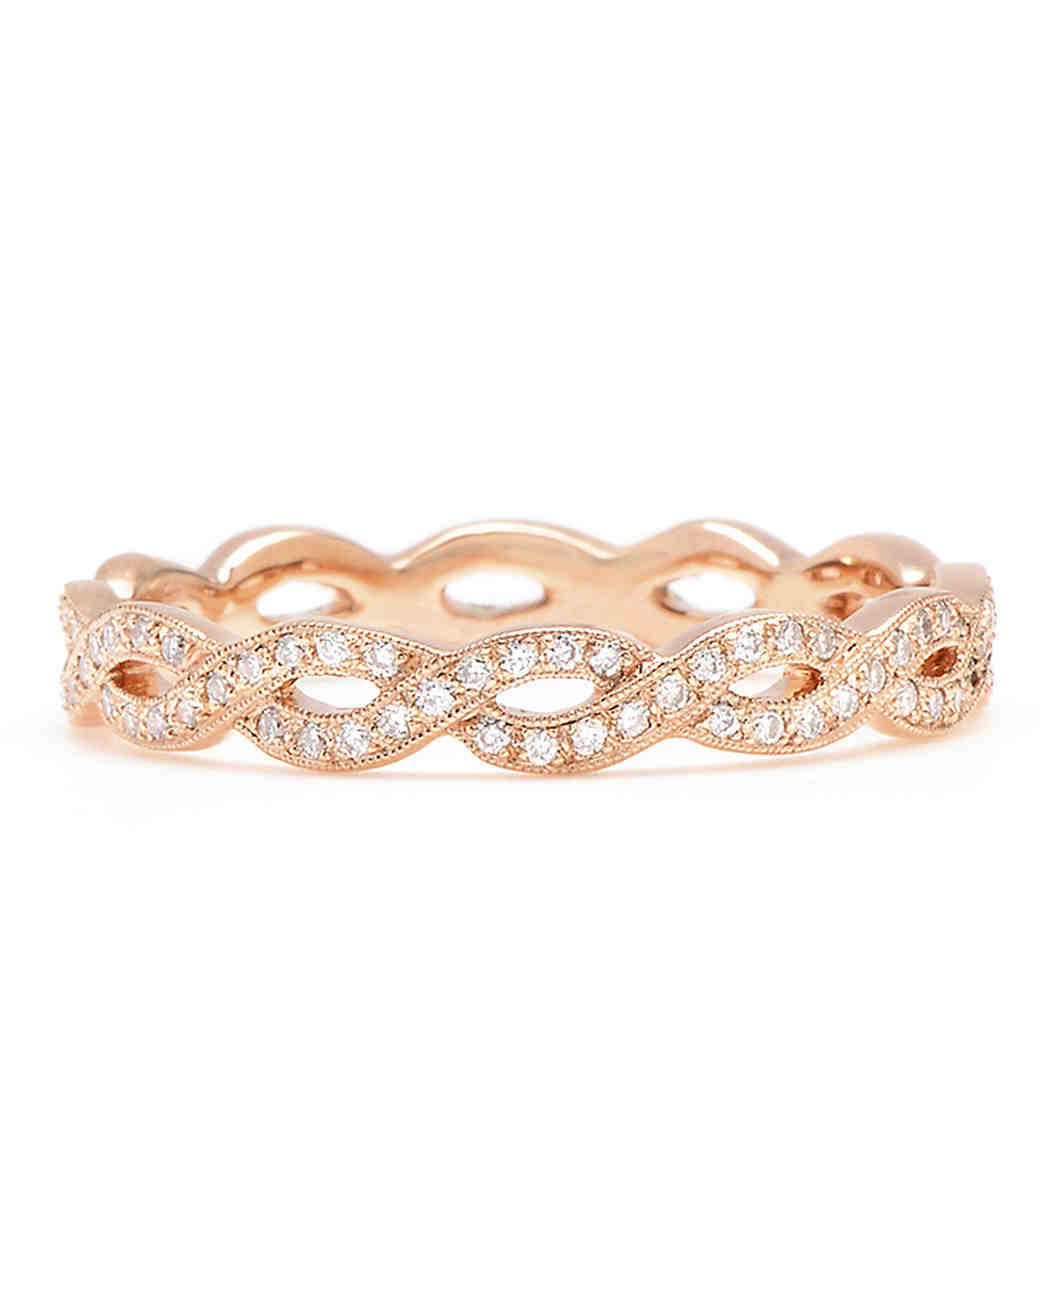 eternity-bands-classics-beverley-k-greenwich-jewelers-0615.jpg